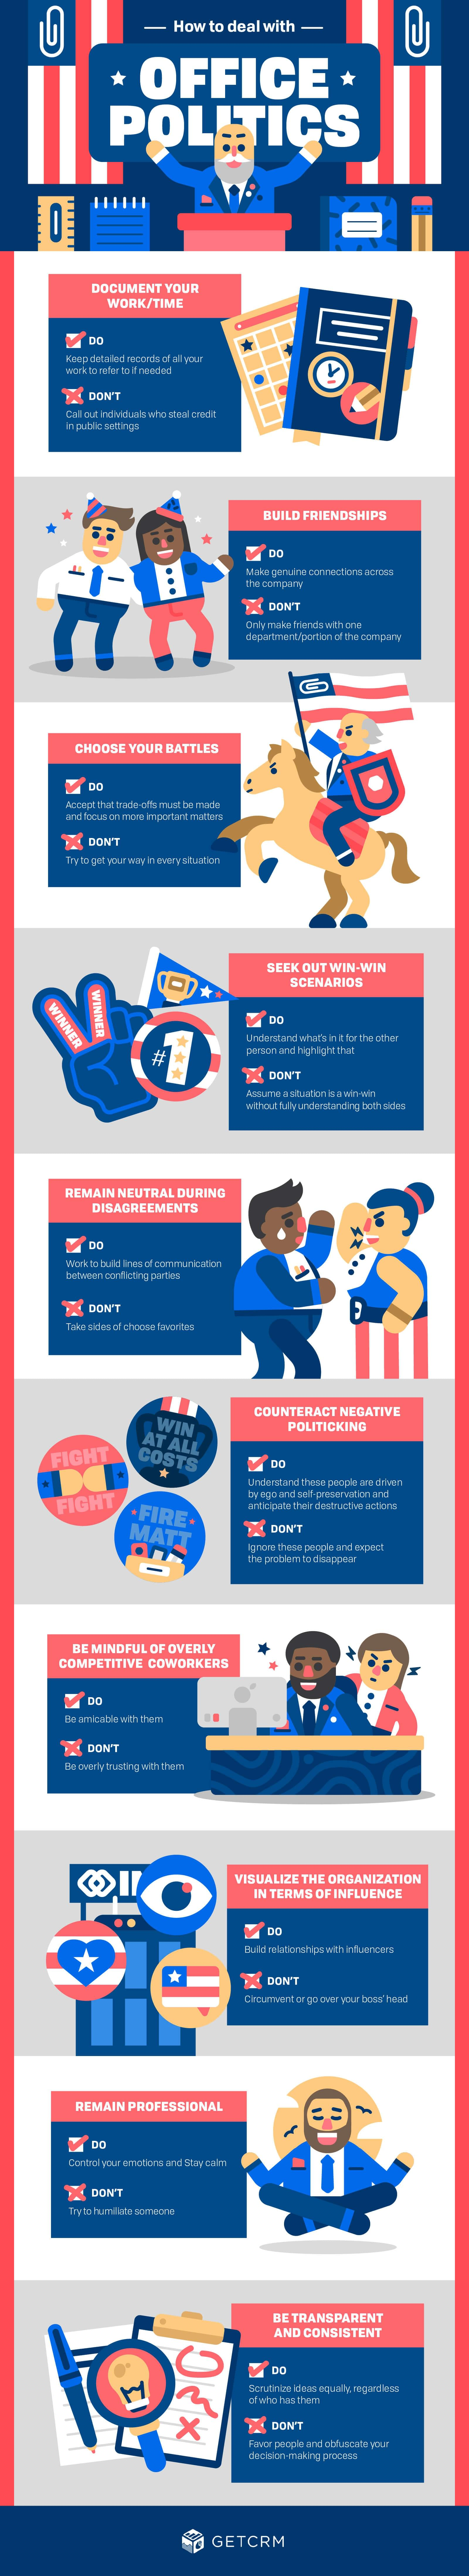 office politics how to deal in workplace infographic